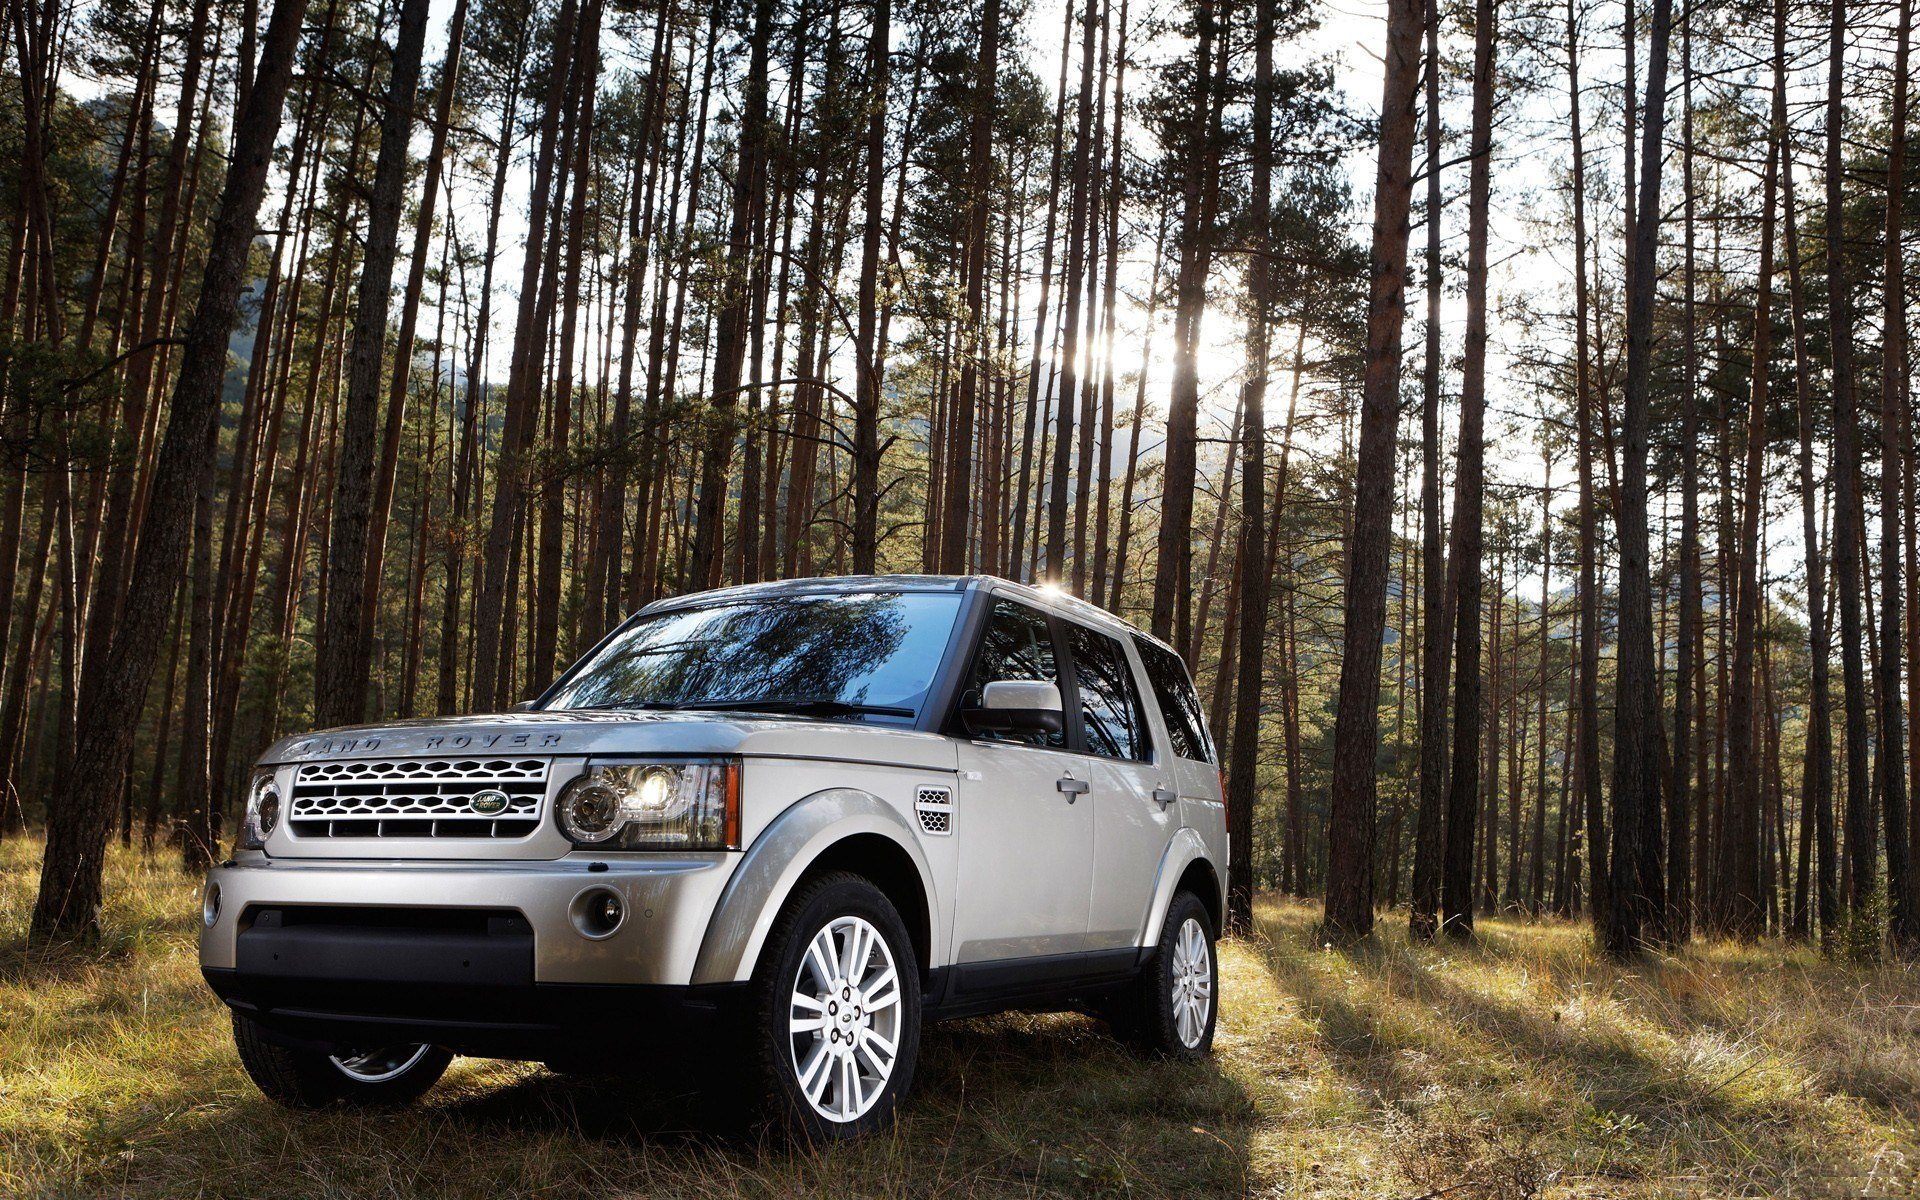 New Land Rover Car In Jungle Hd Wallpaper Hd Wallpapers On This Month